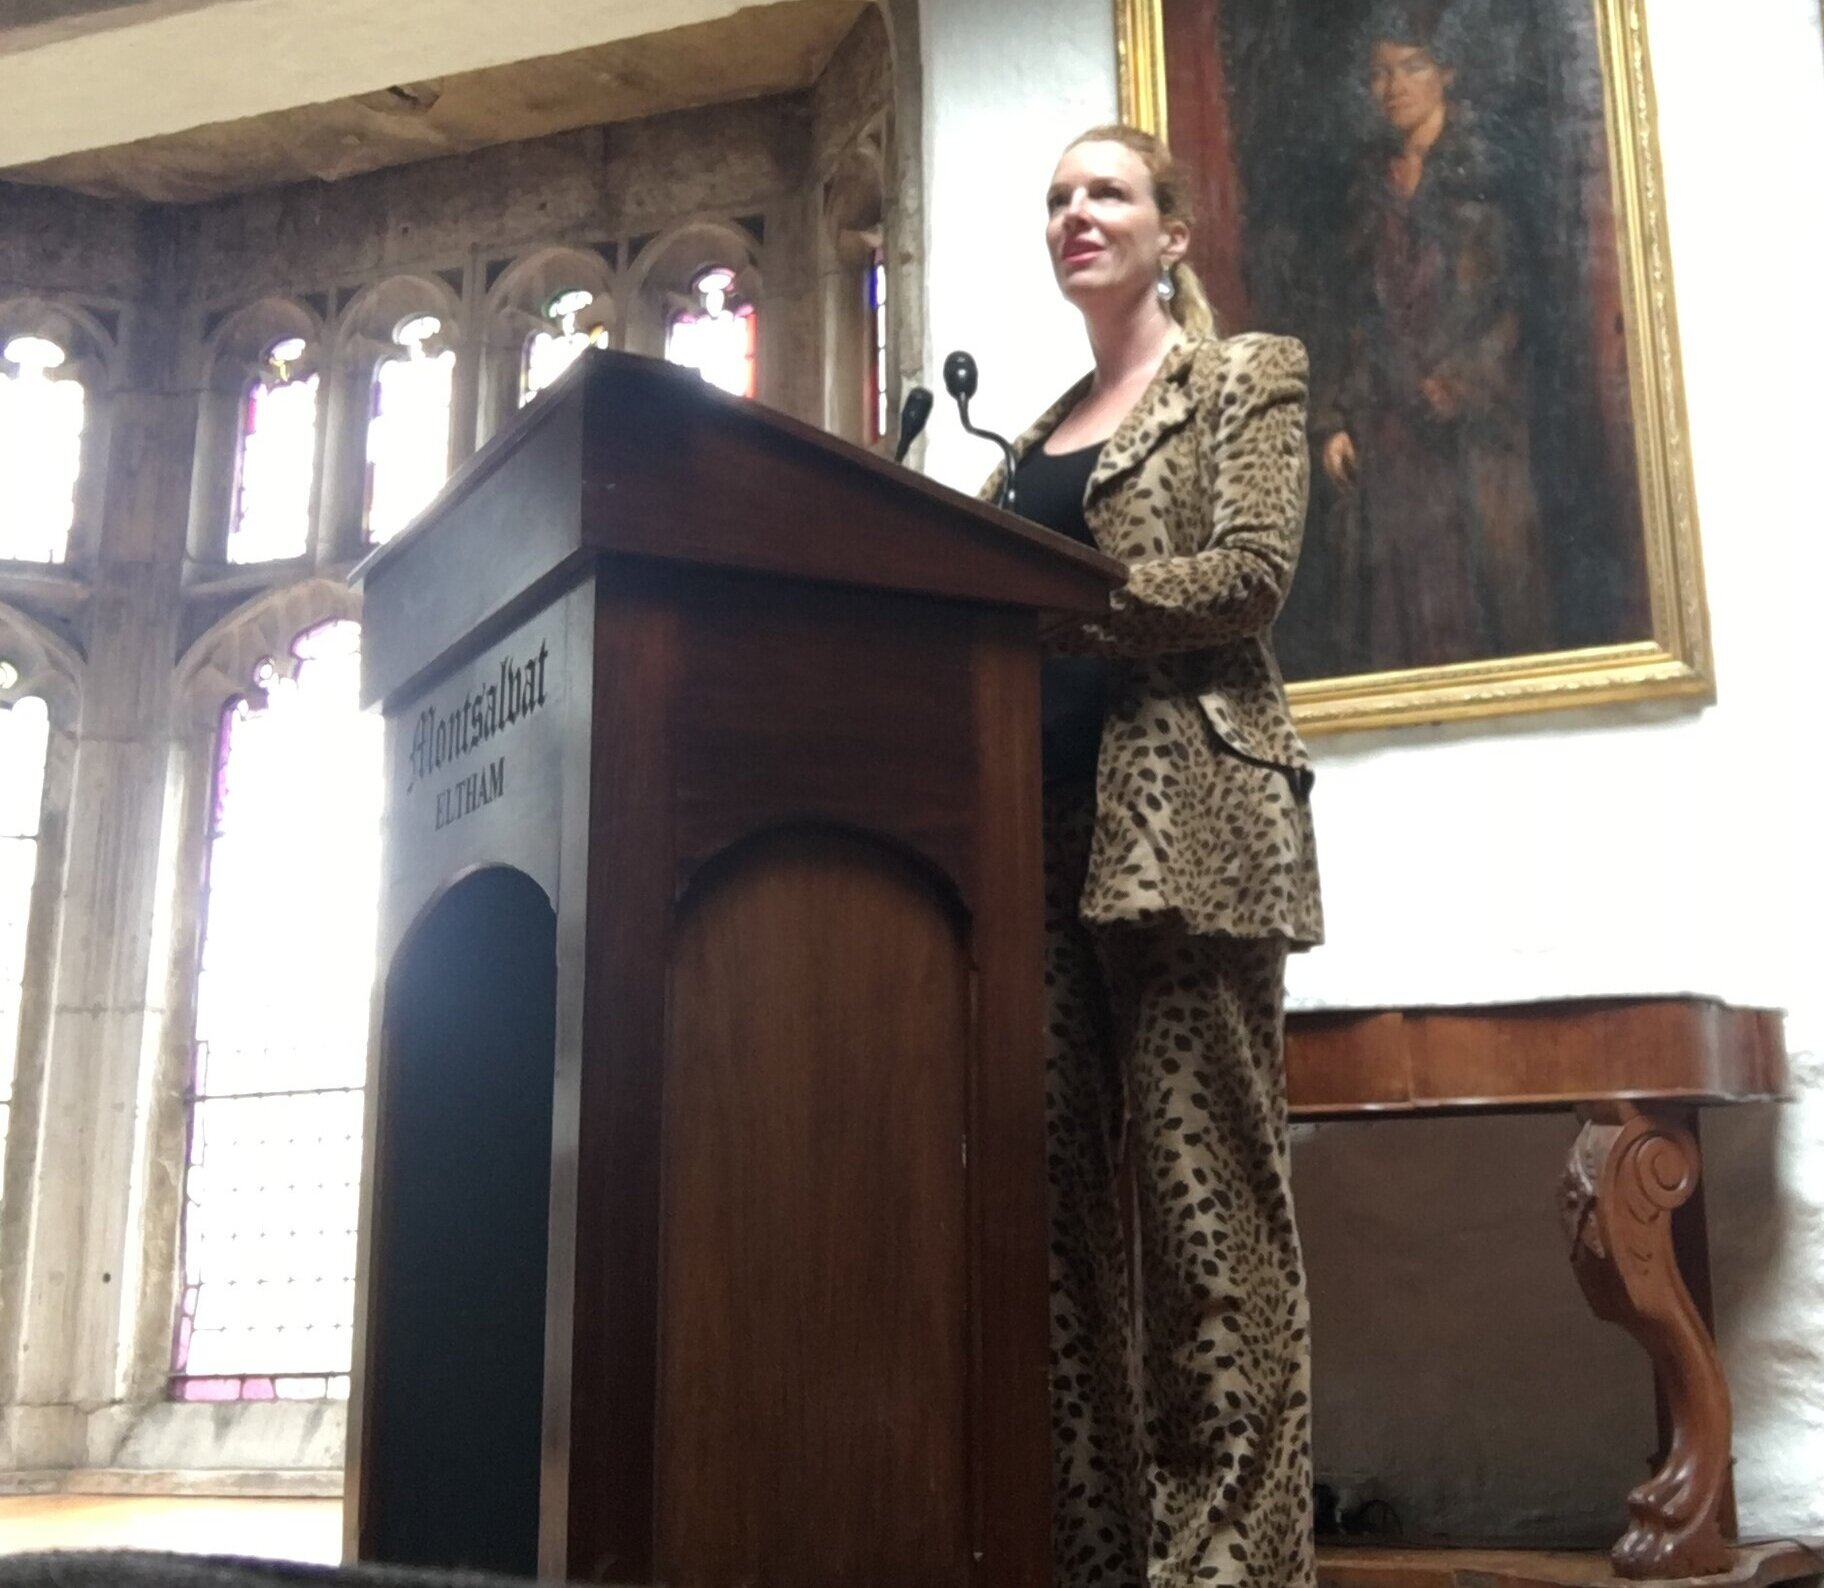 Leopard was the dress theme for this sassy lady's funeral at Montsalvat